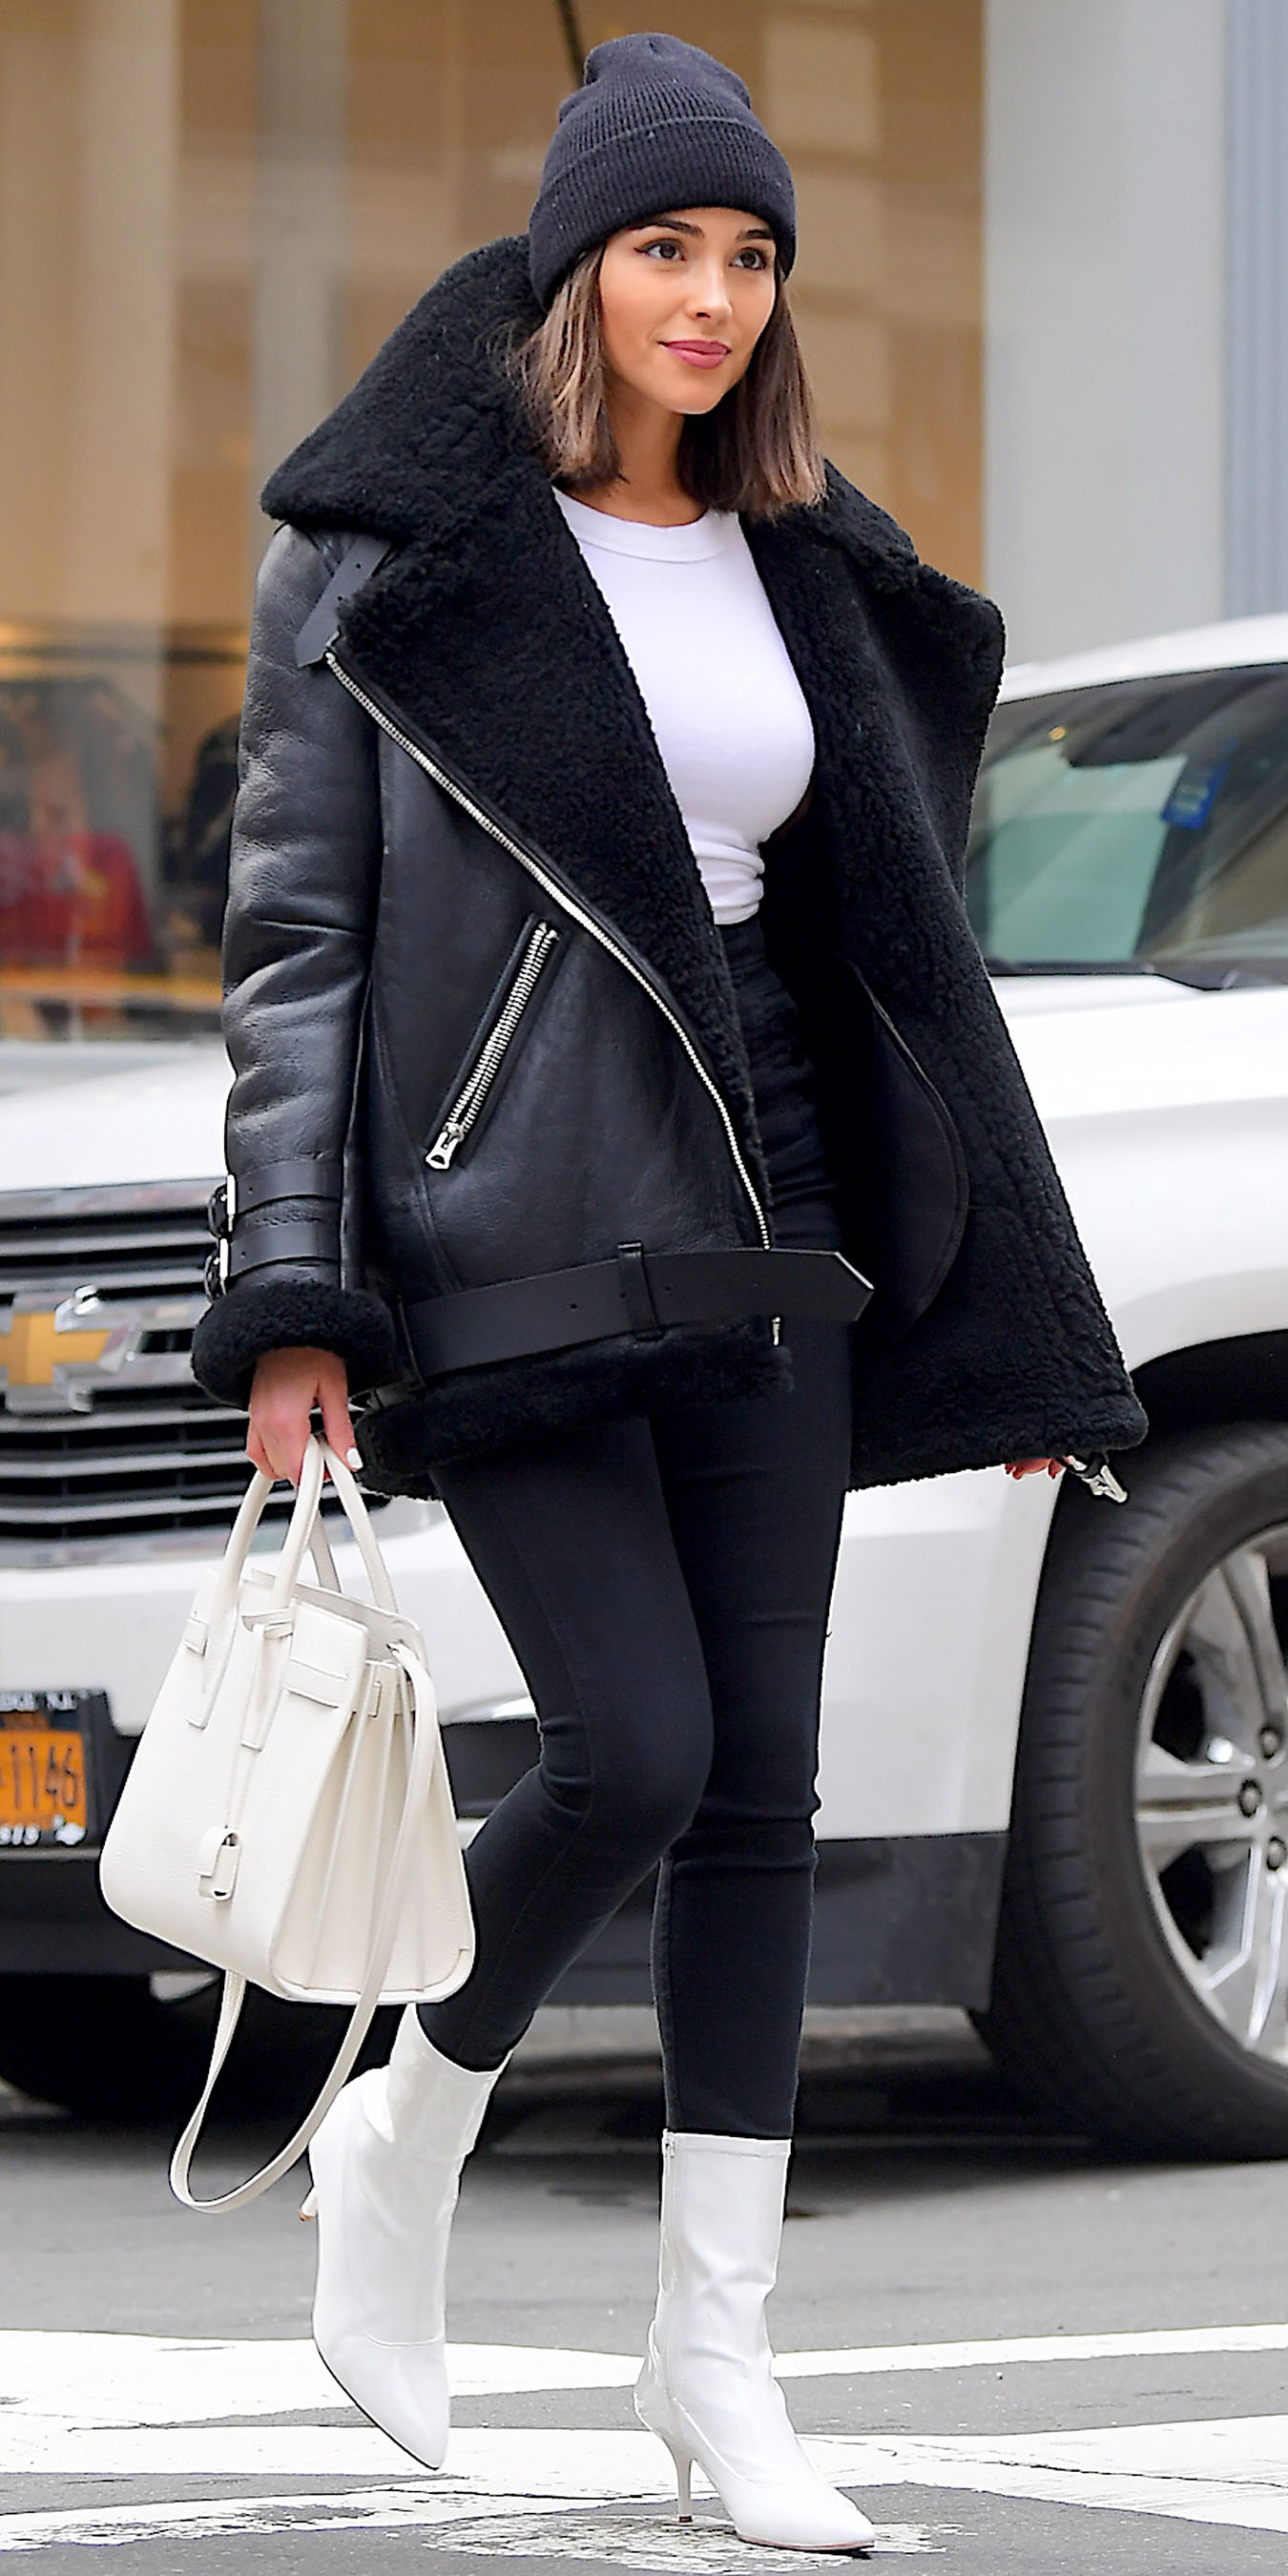 black-skinny-jeans-white-shoe-booties-white-tee-black-jacket-moto-shearling-hairr-lob-beanie-white-bag-oliviaculpo-fall-winter-lunch.jpg